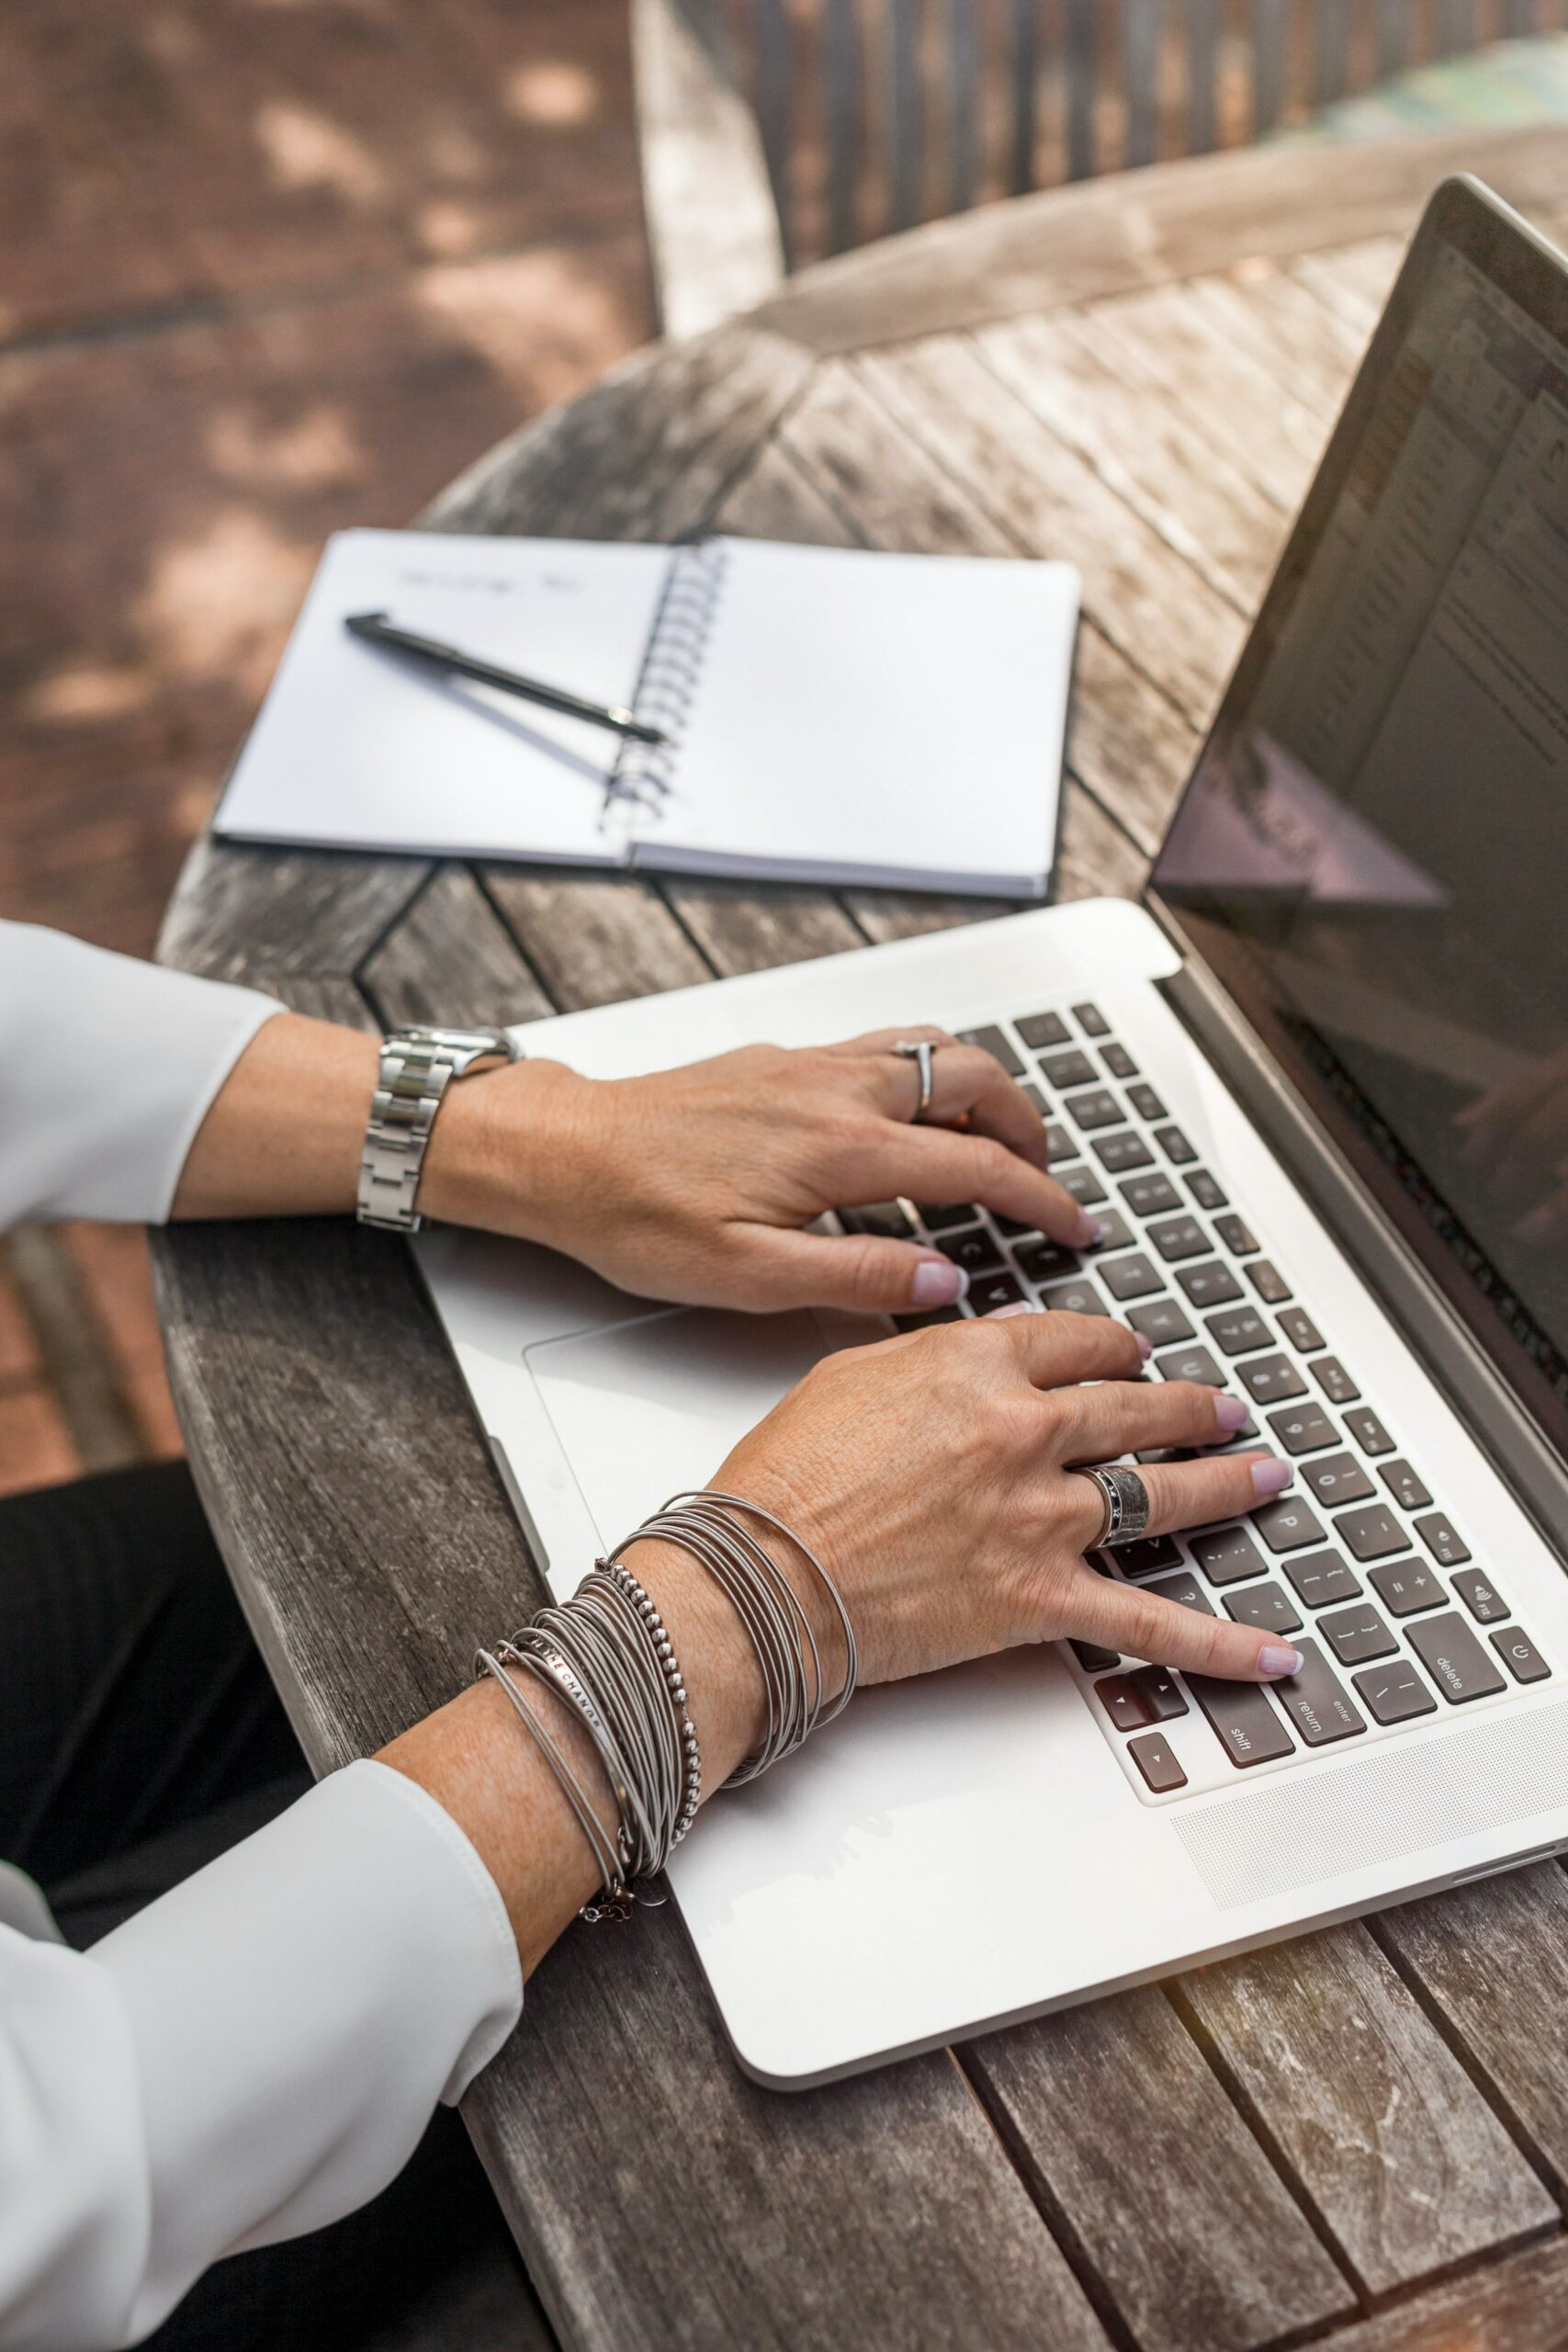 Dealing with Critic's Math: A woman types on a laptop outdoors